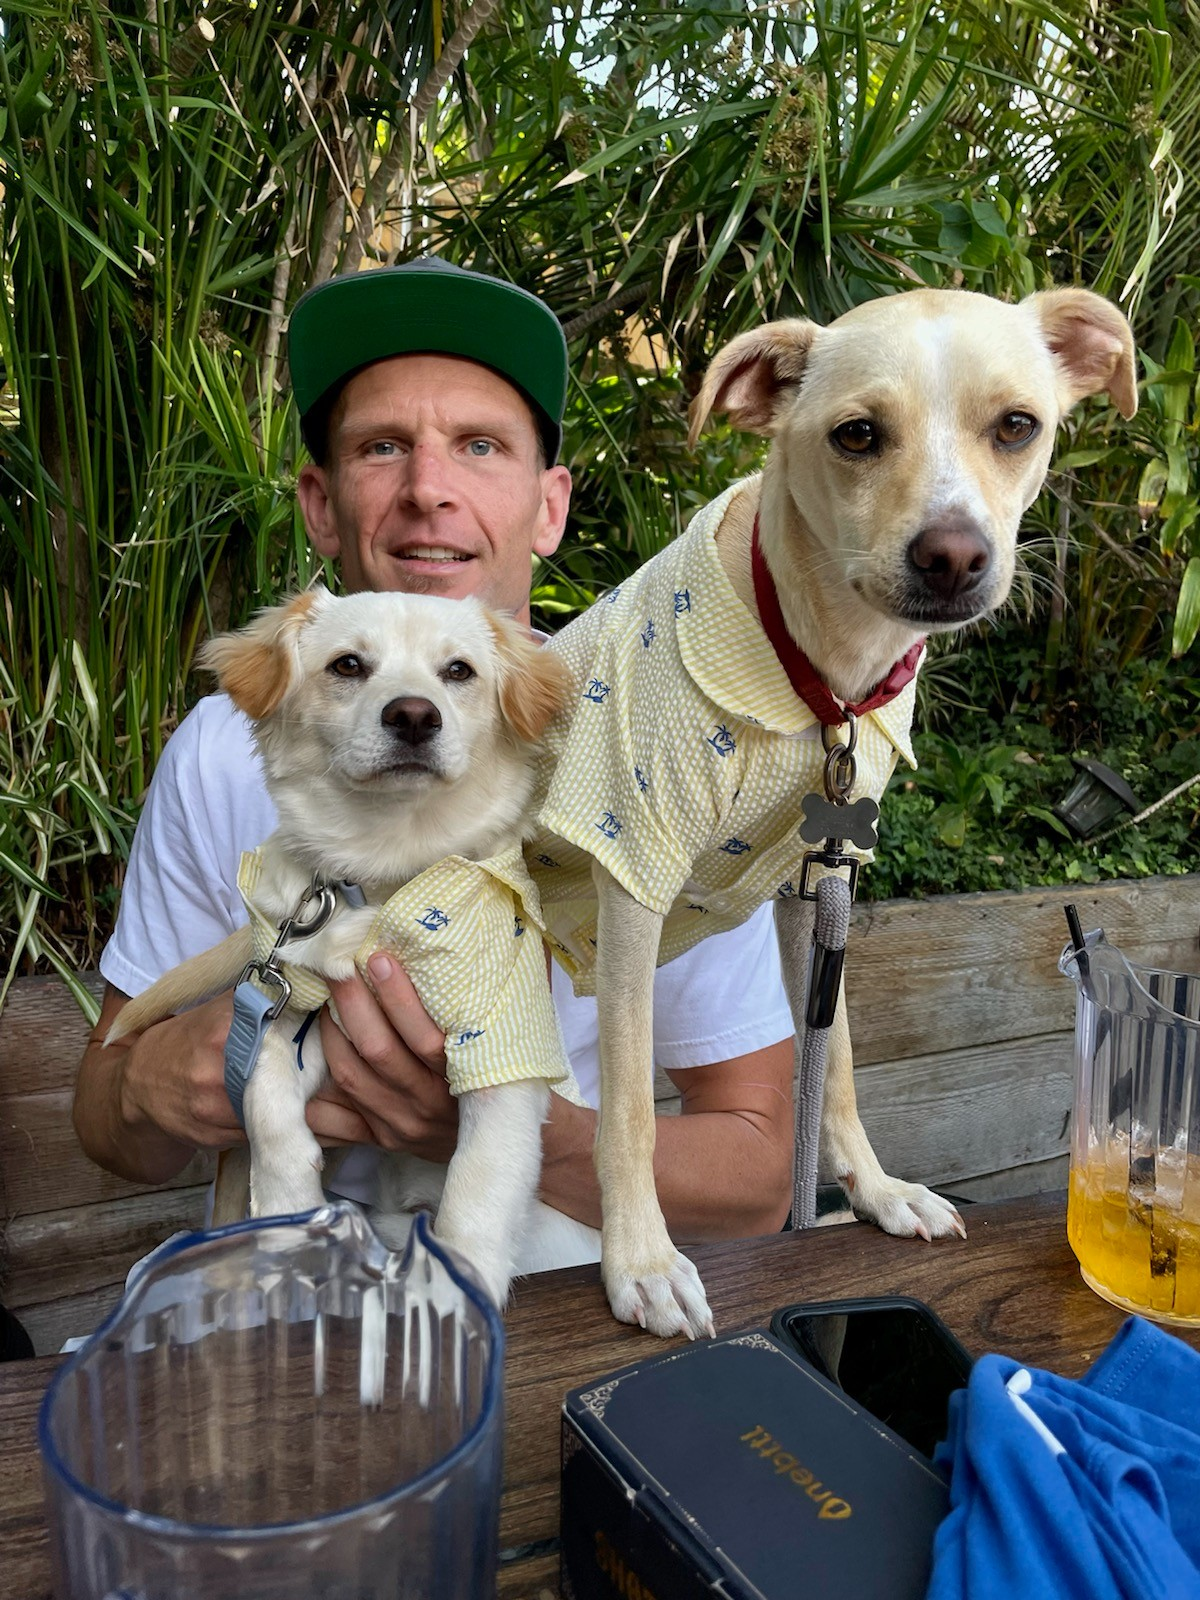 The Hole In The Wall owner Crosby Roper with his dogs, Pepé and Hank (